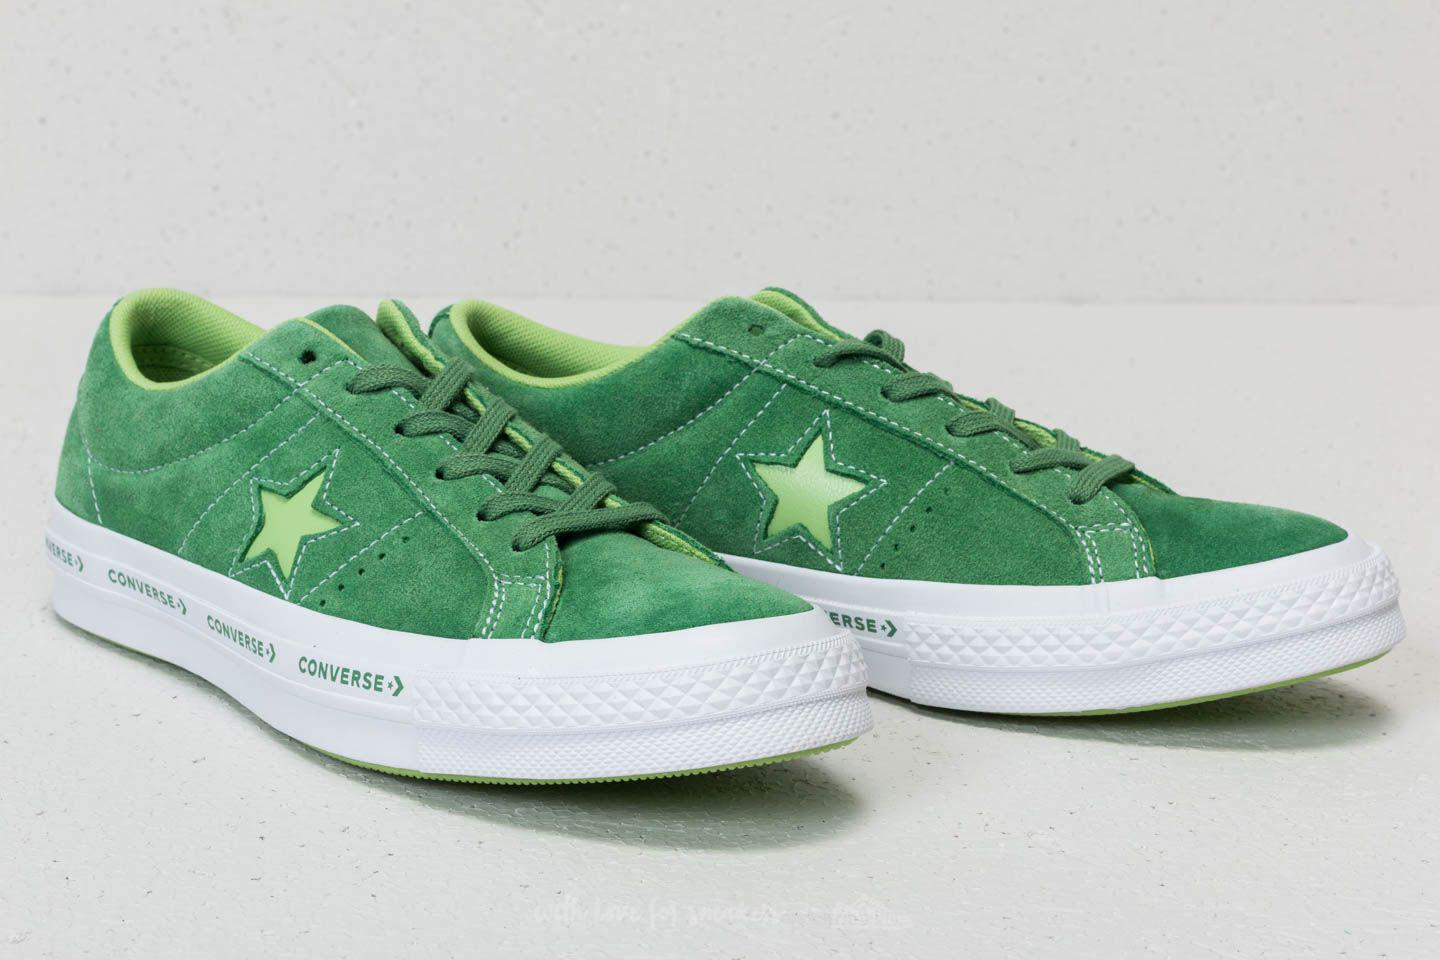 027620cf8e0a Lyst - Converse One Star Ox Mint Green  Jade Lime  White in Green ...